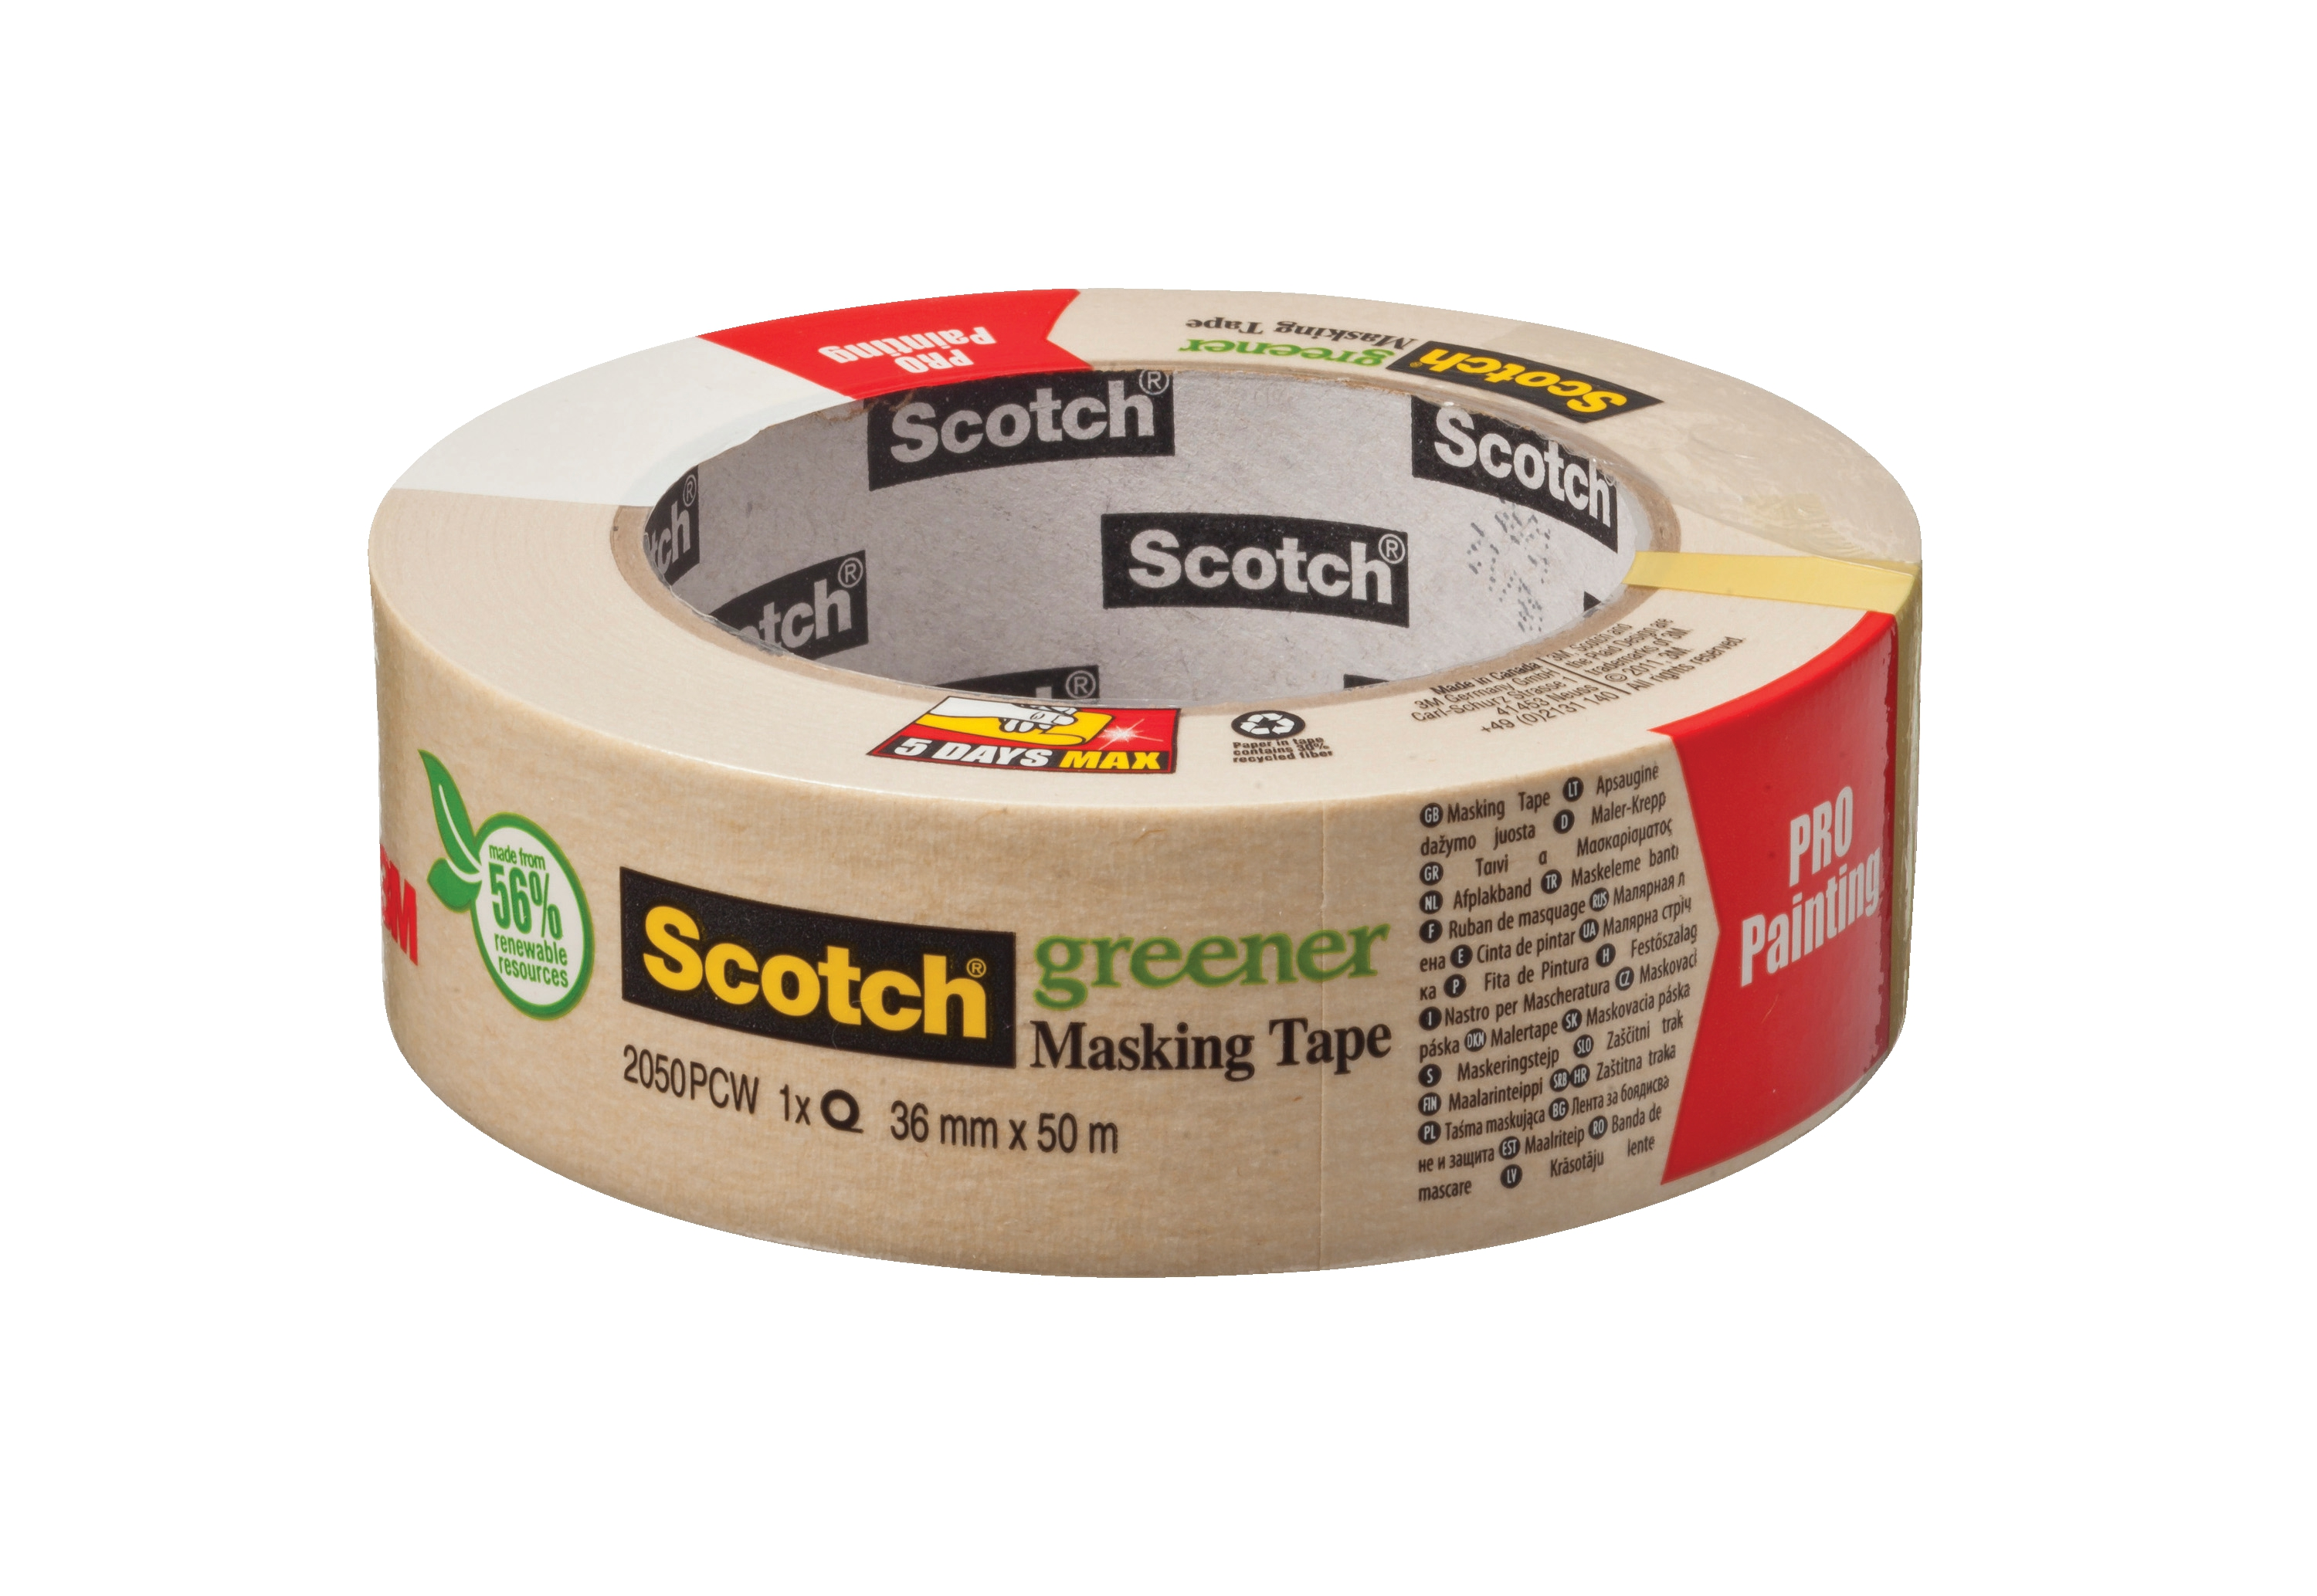 Scotch Greener Masking Tape 36mmx50m Ref 2050 1.5A PCW